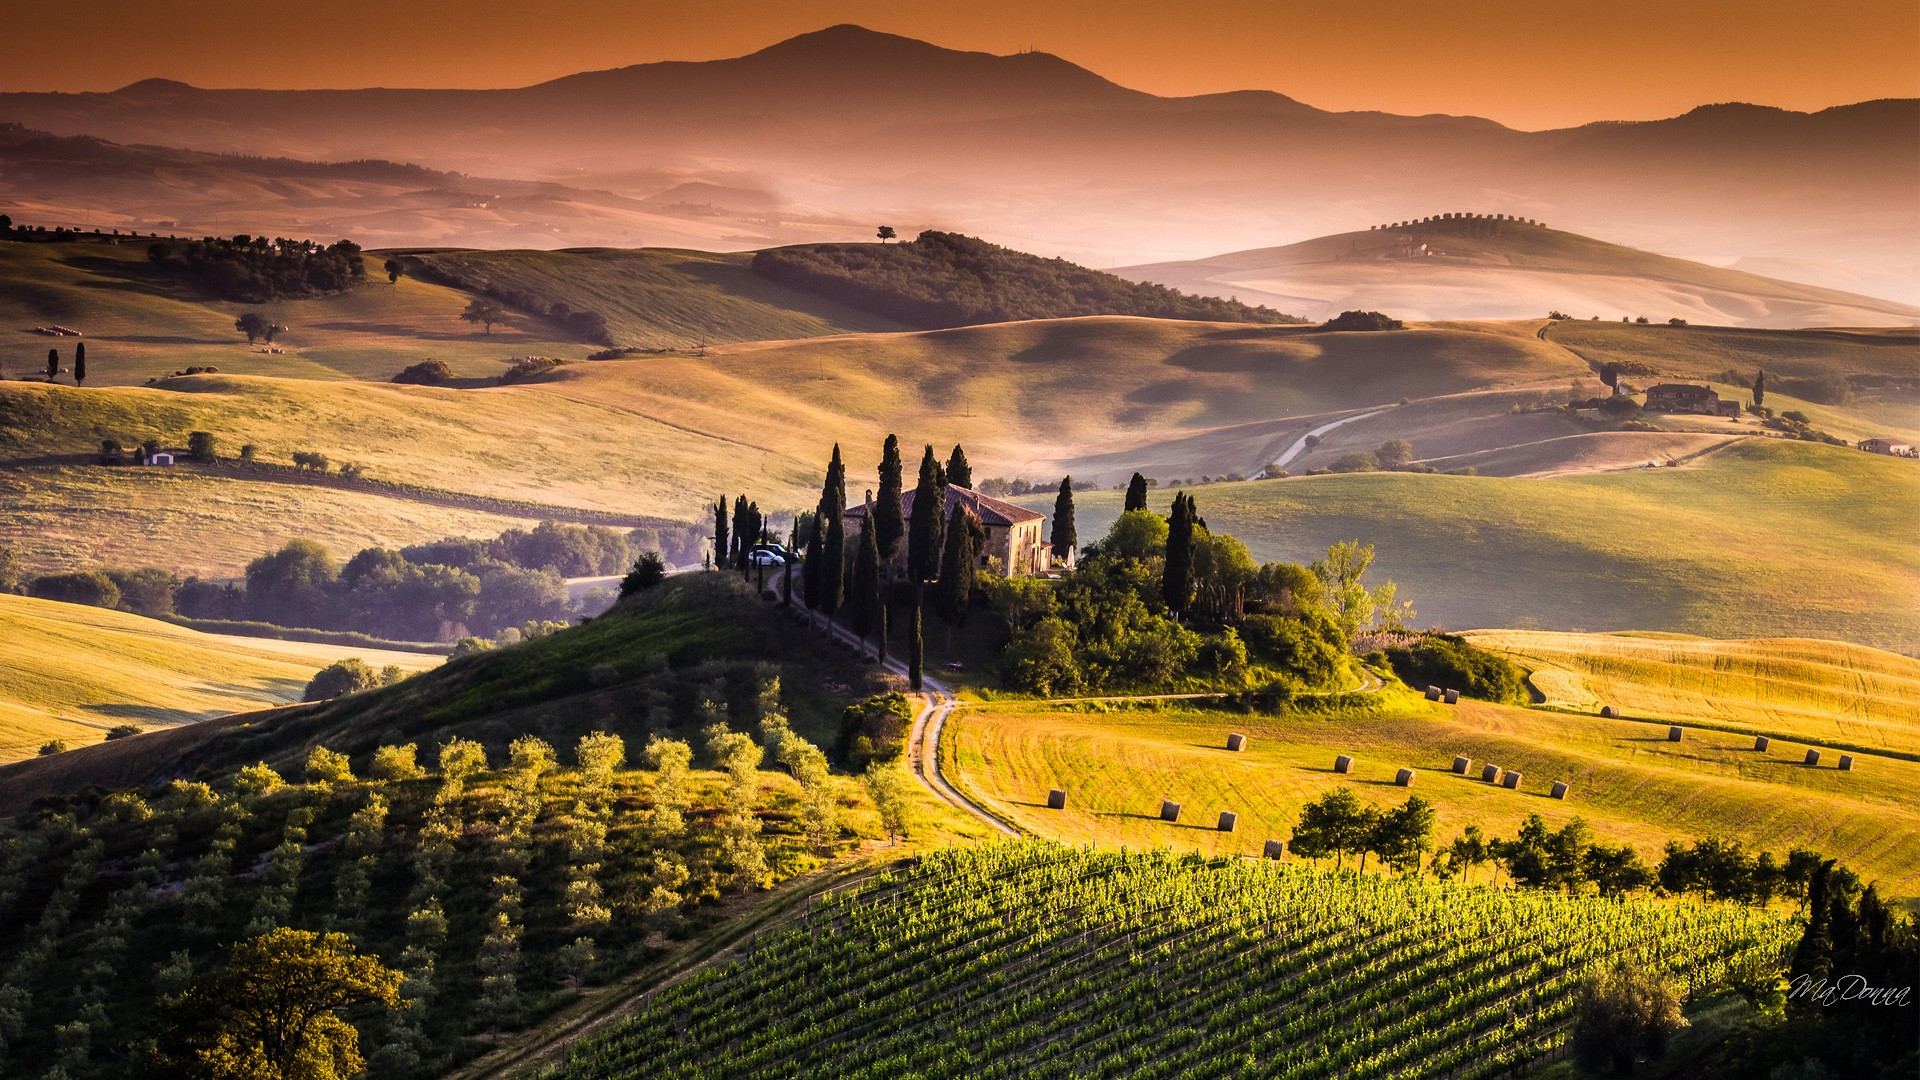 High Resolution Wallpaper | Tuscany 1920x1080 px